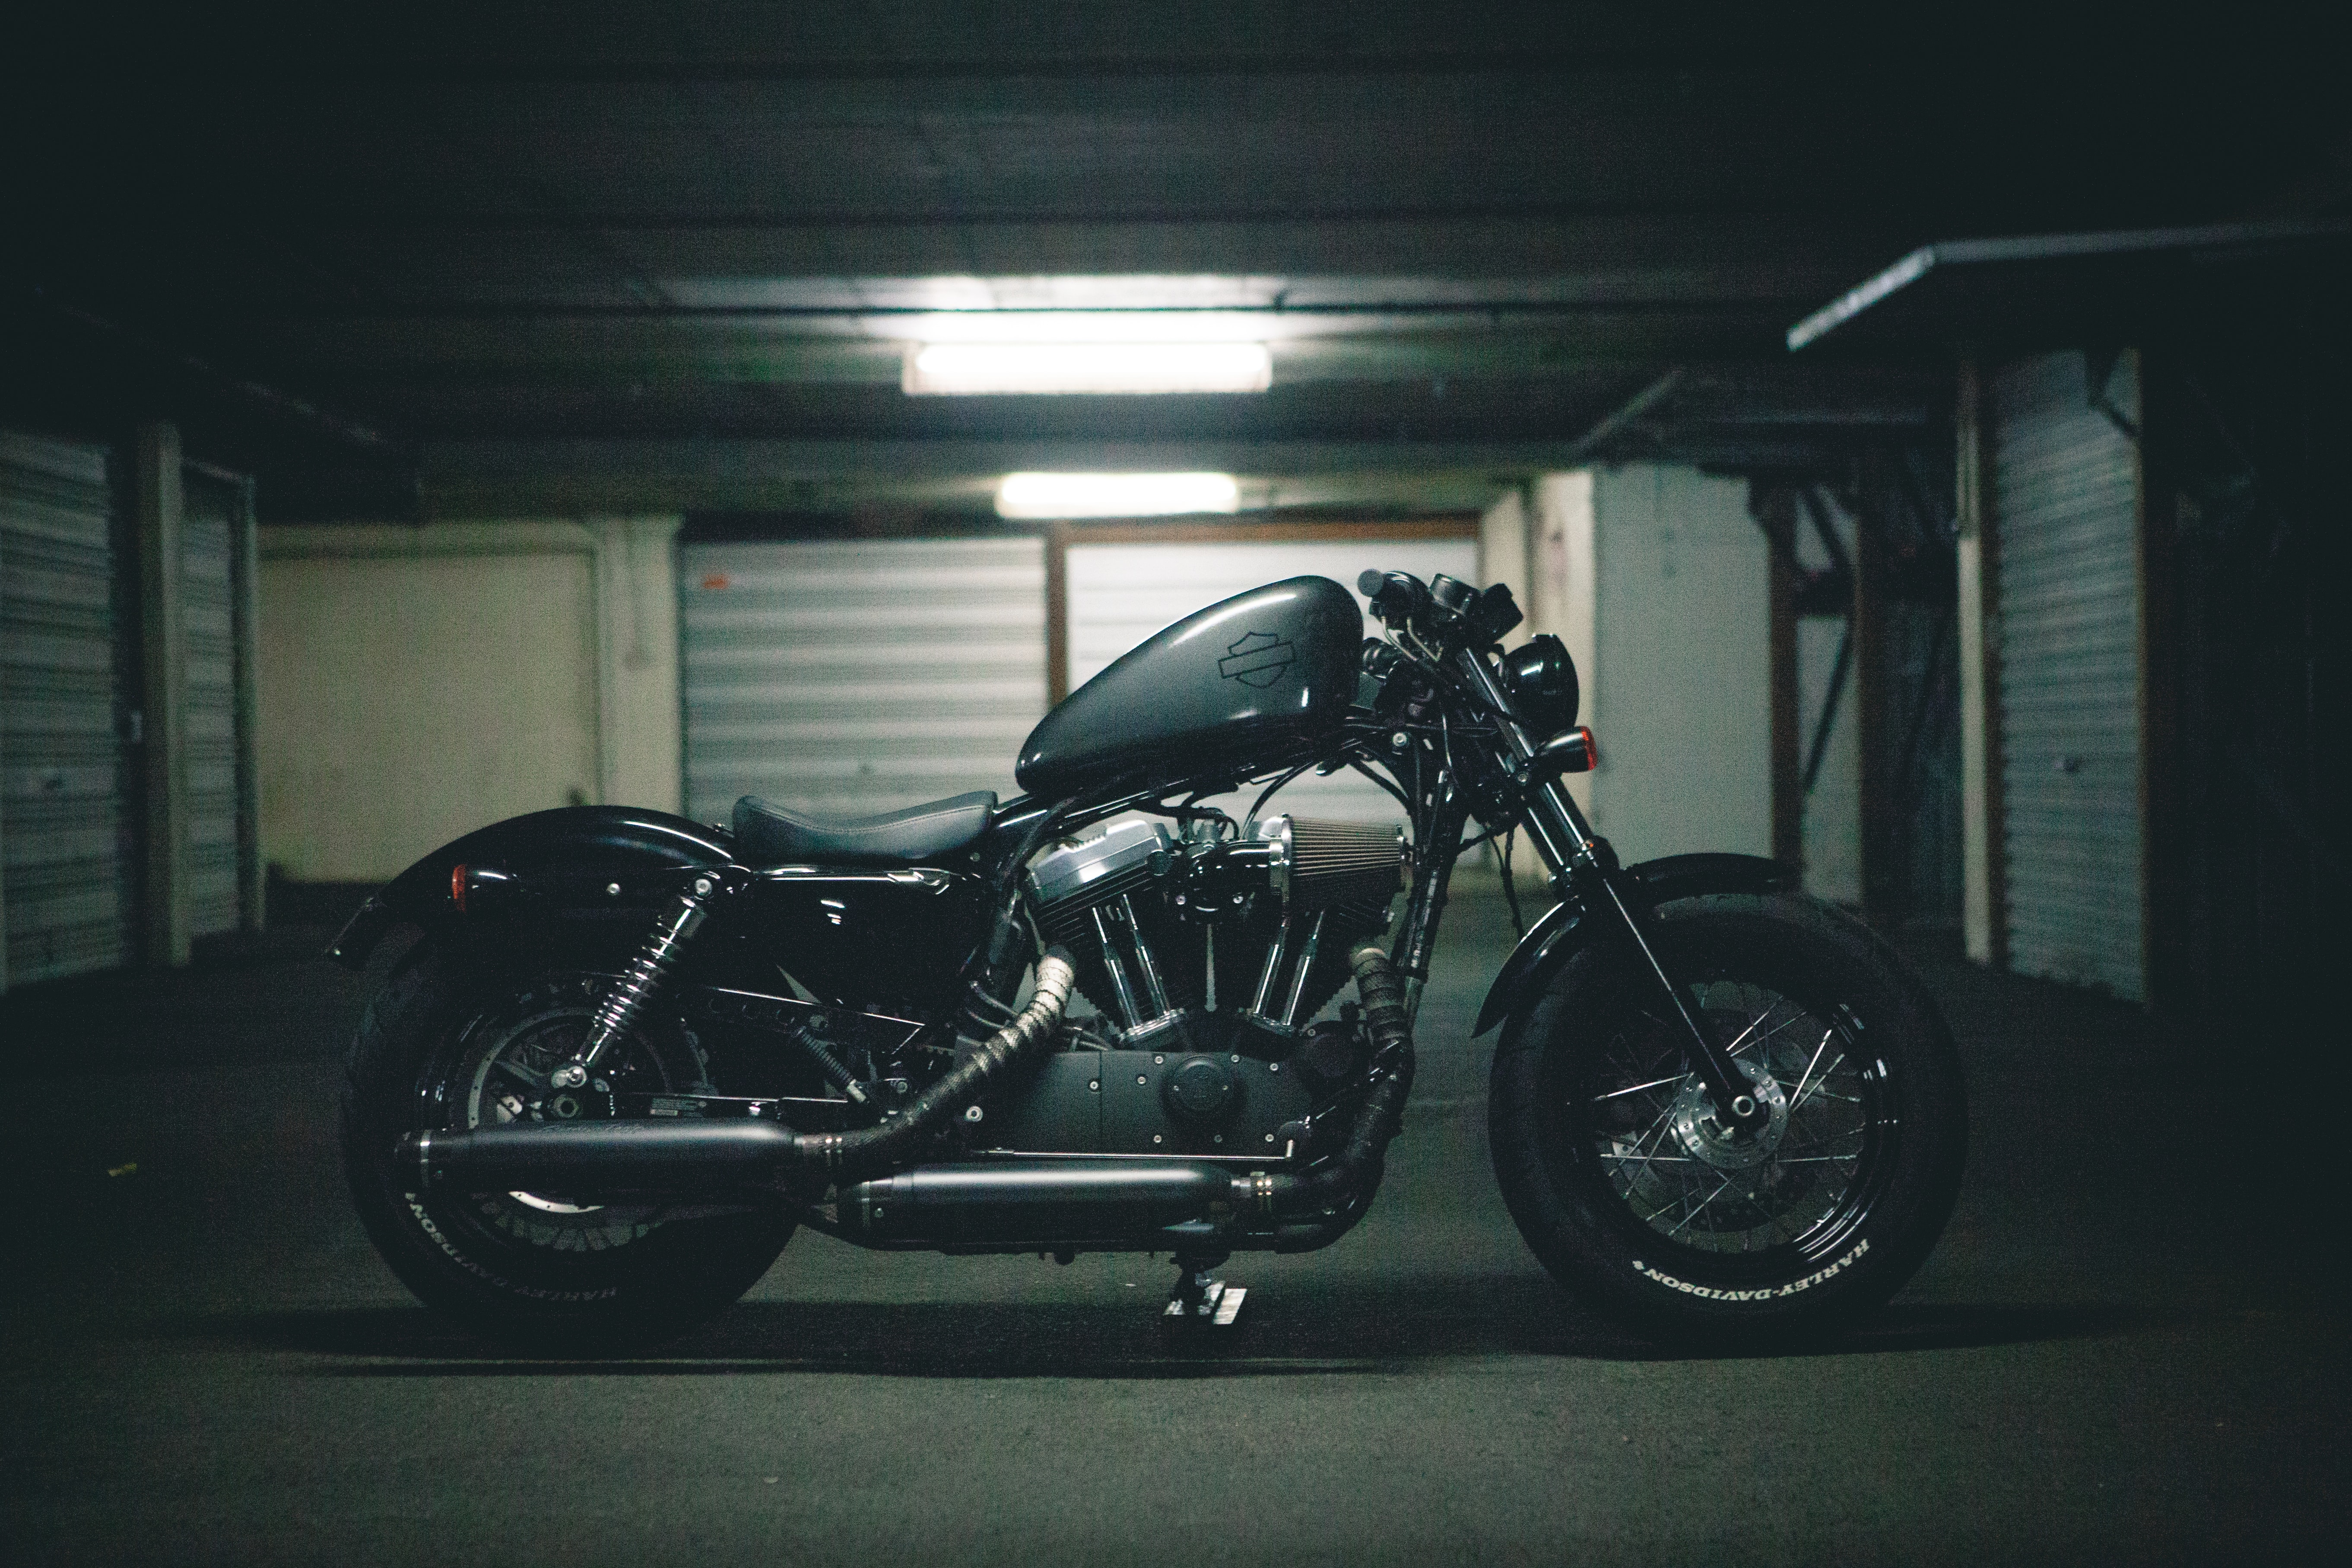 black bobber motorcycle inside garage